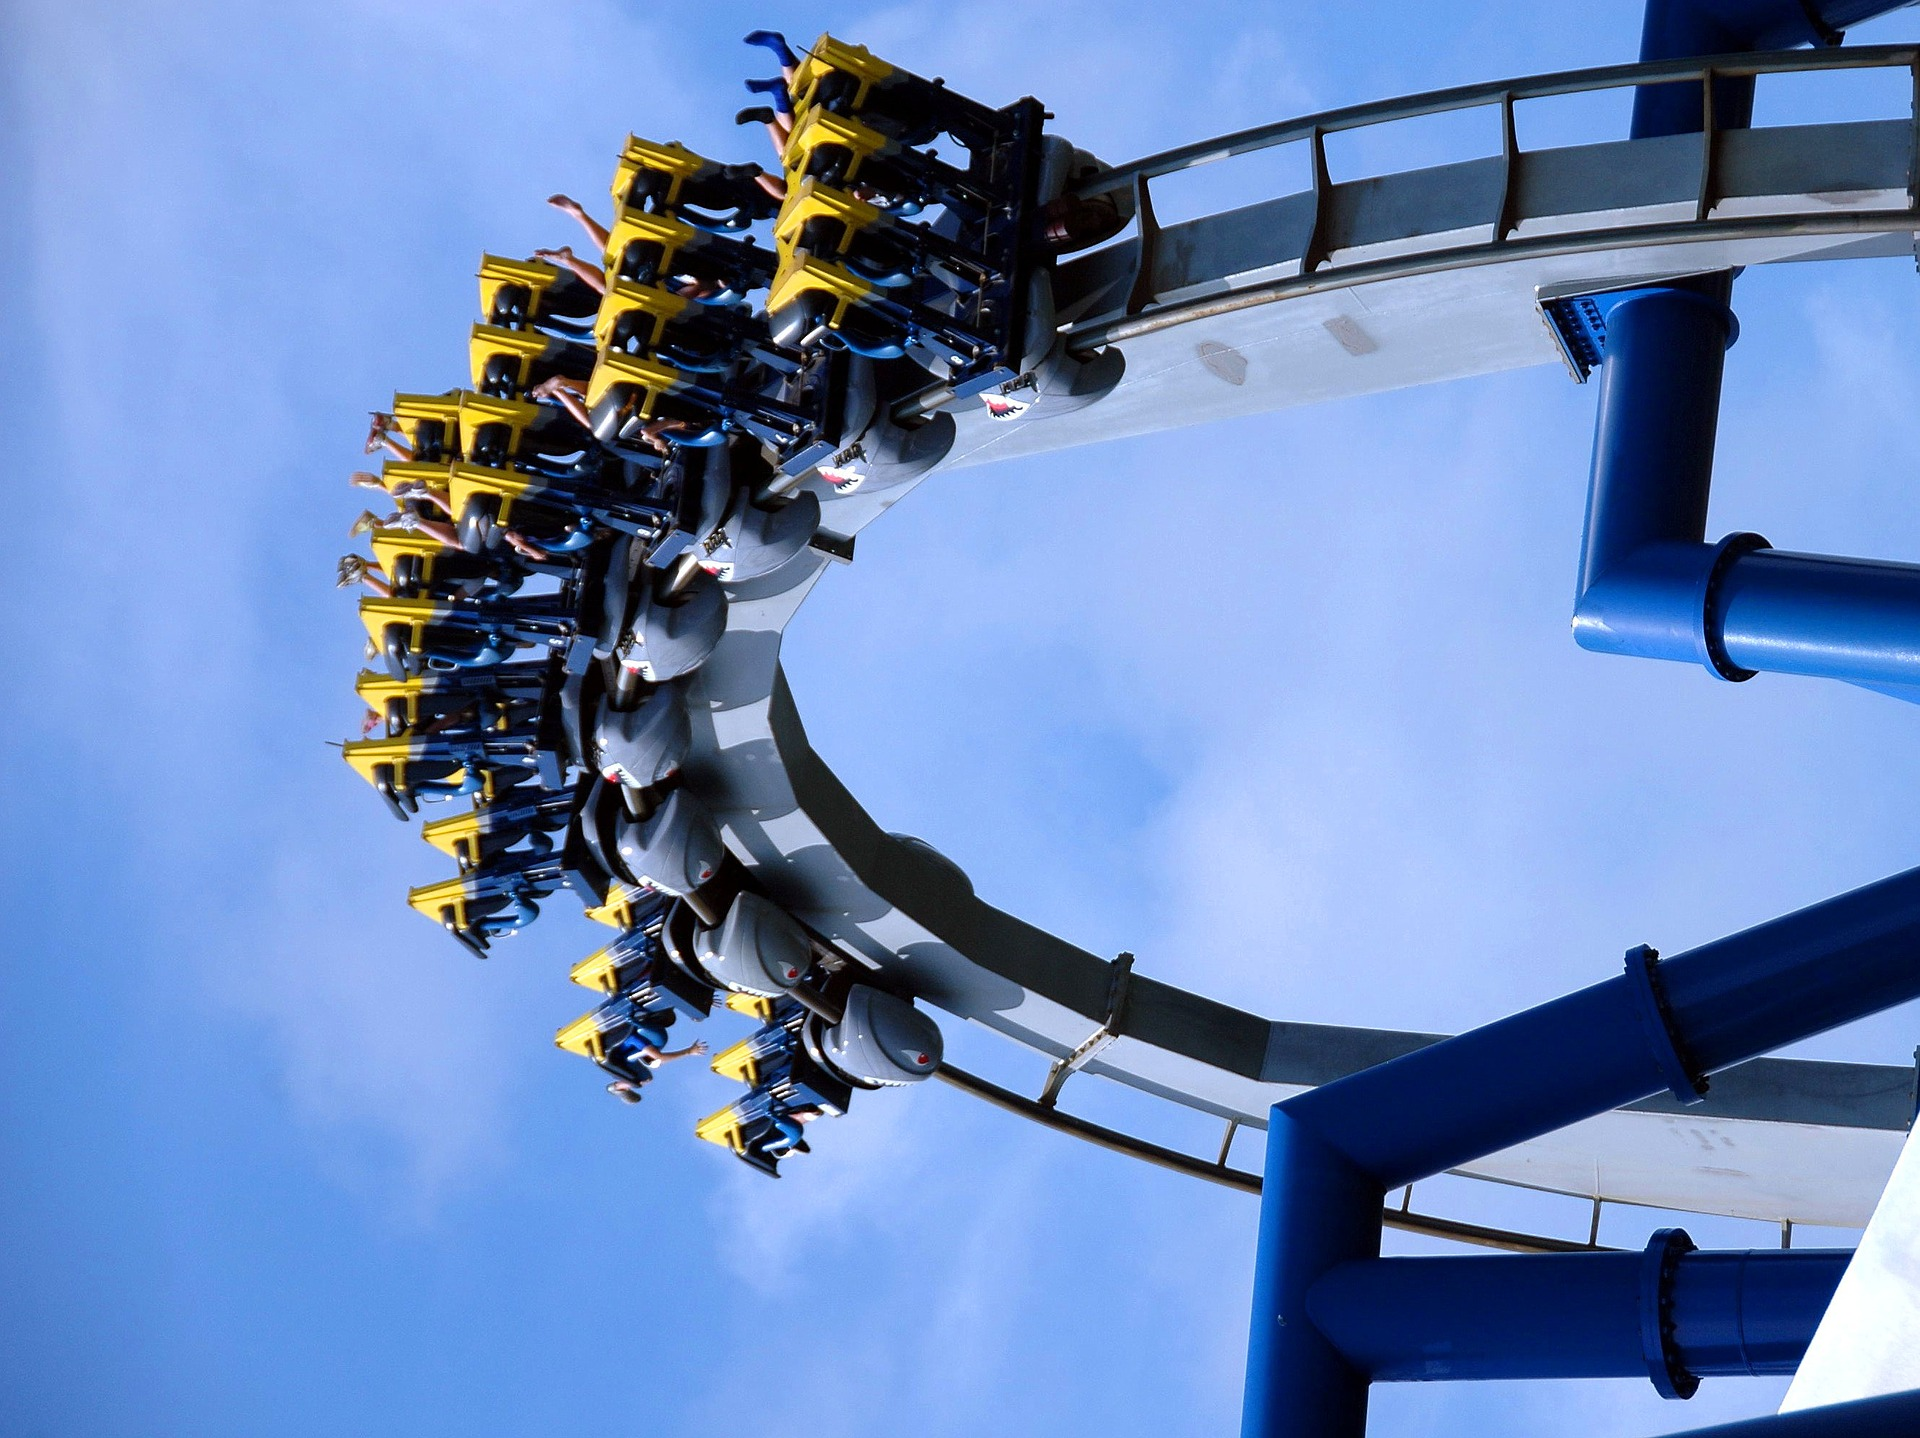 Scream if you want to go faster – is the life of an entrepreneur really like a roller coaster ride?